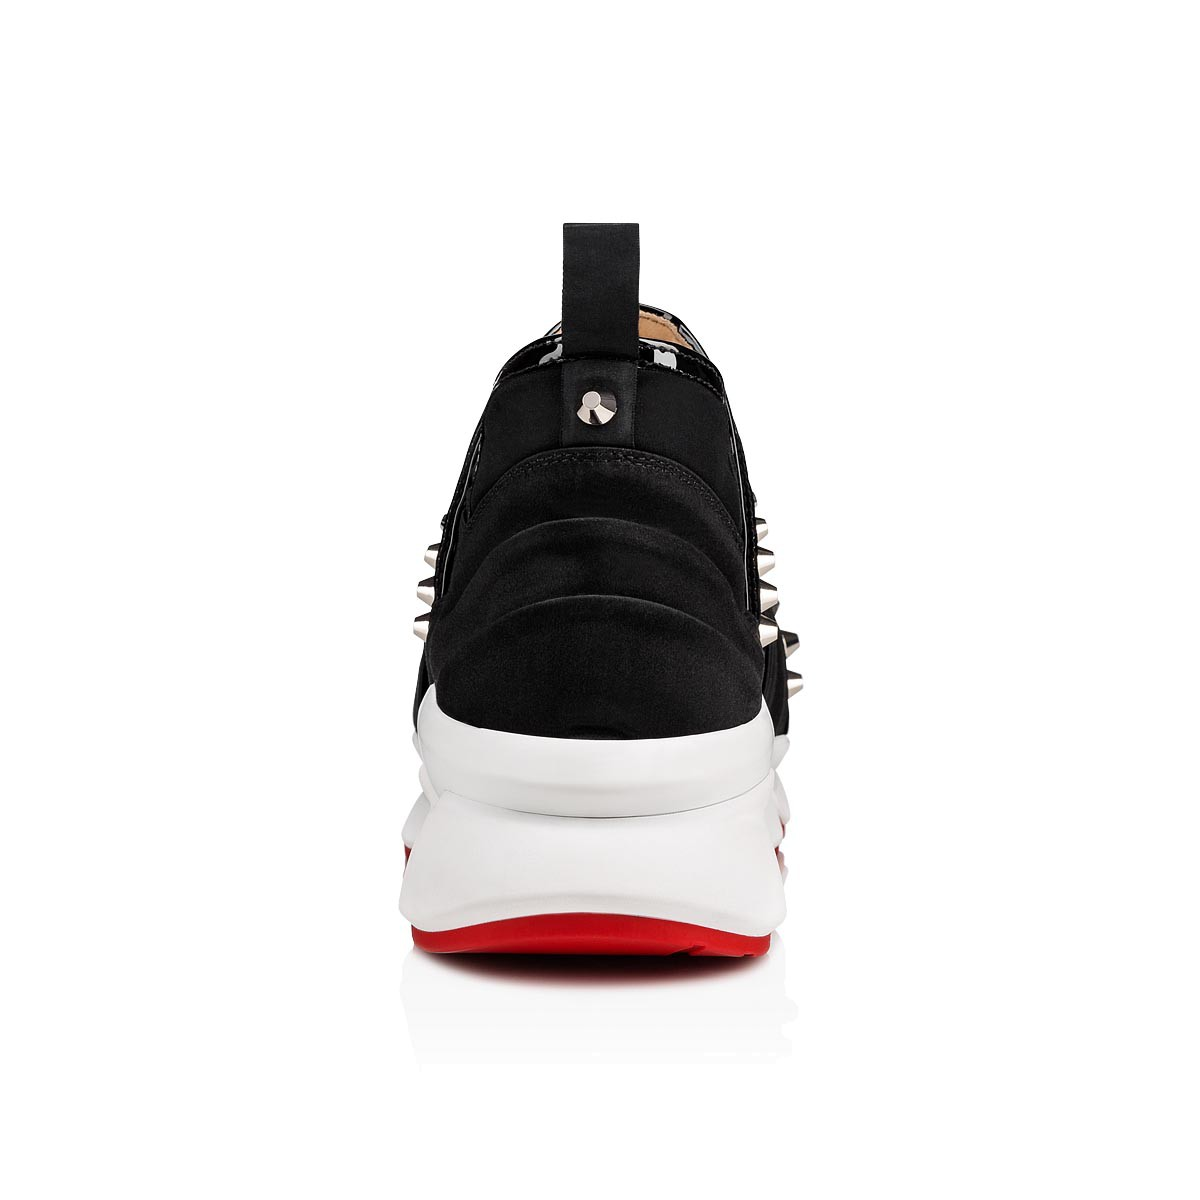 Zwarte Nikes Dames Christian Louboutin 1 2 3 Run Dames Sneakers Zwart Wit In Sneakerstad